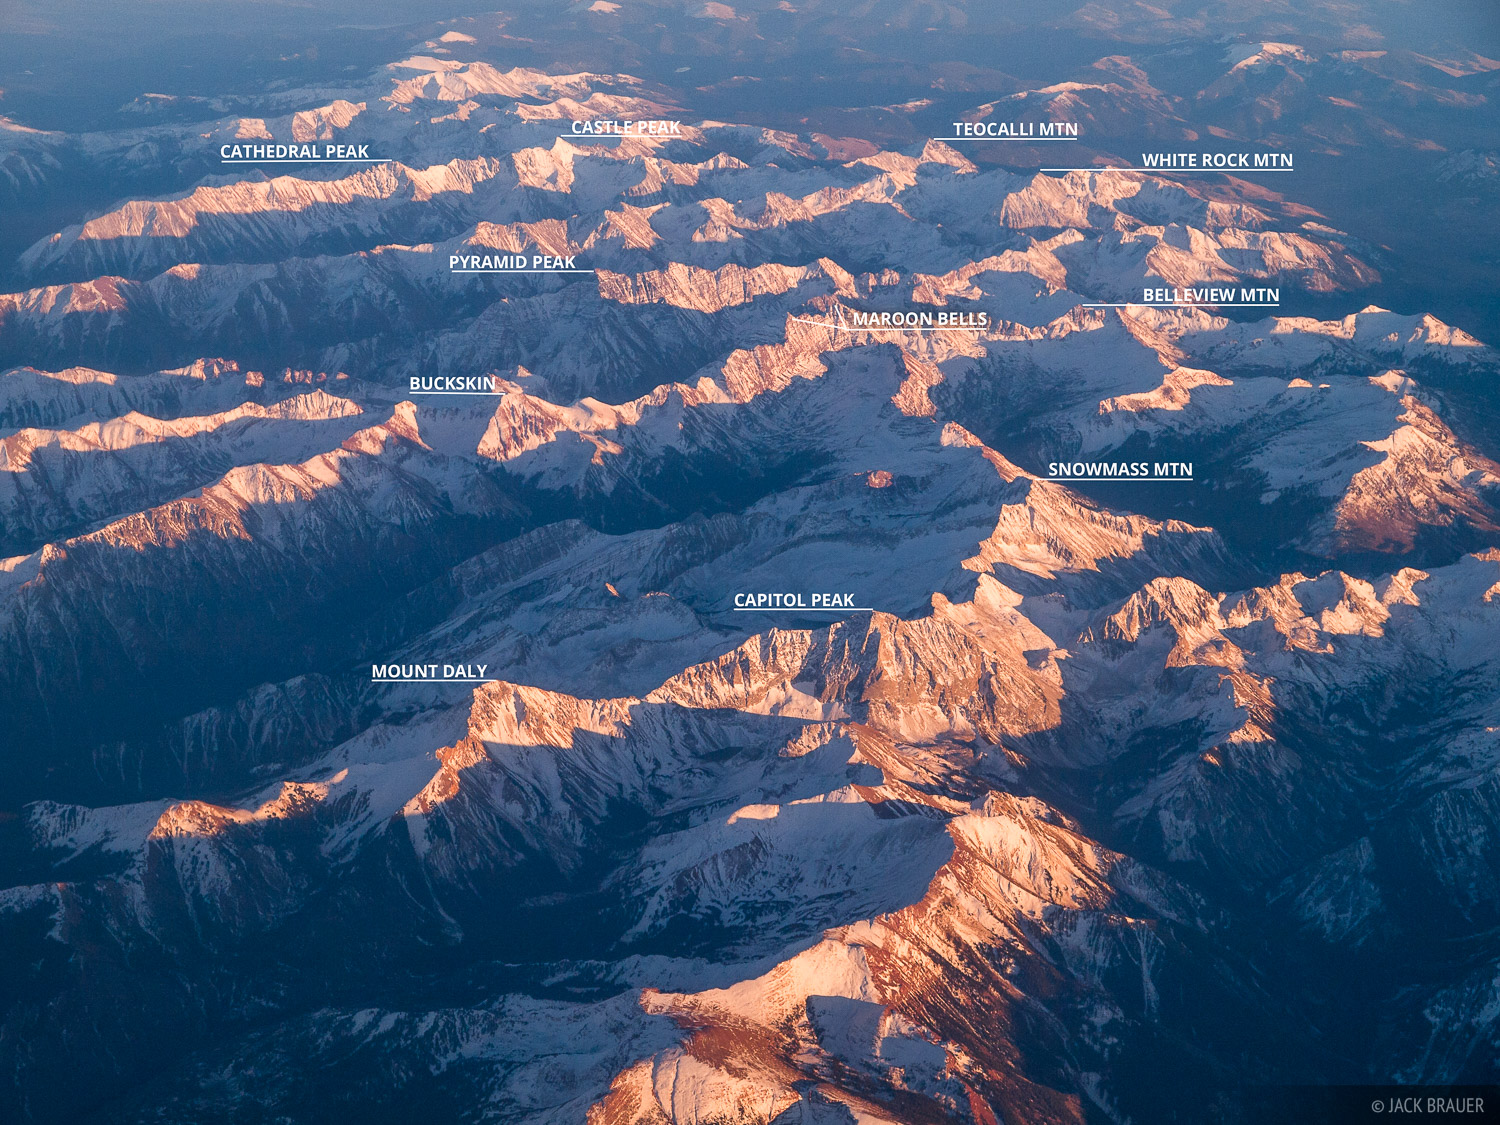 Colorado, aerial, Elk Mountains, 14ers, Capitol Peak, Maroon Bells, Snowmass Mountain, Maroon Bells-Snowmass Wilderness, photo